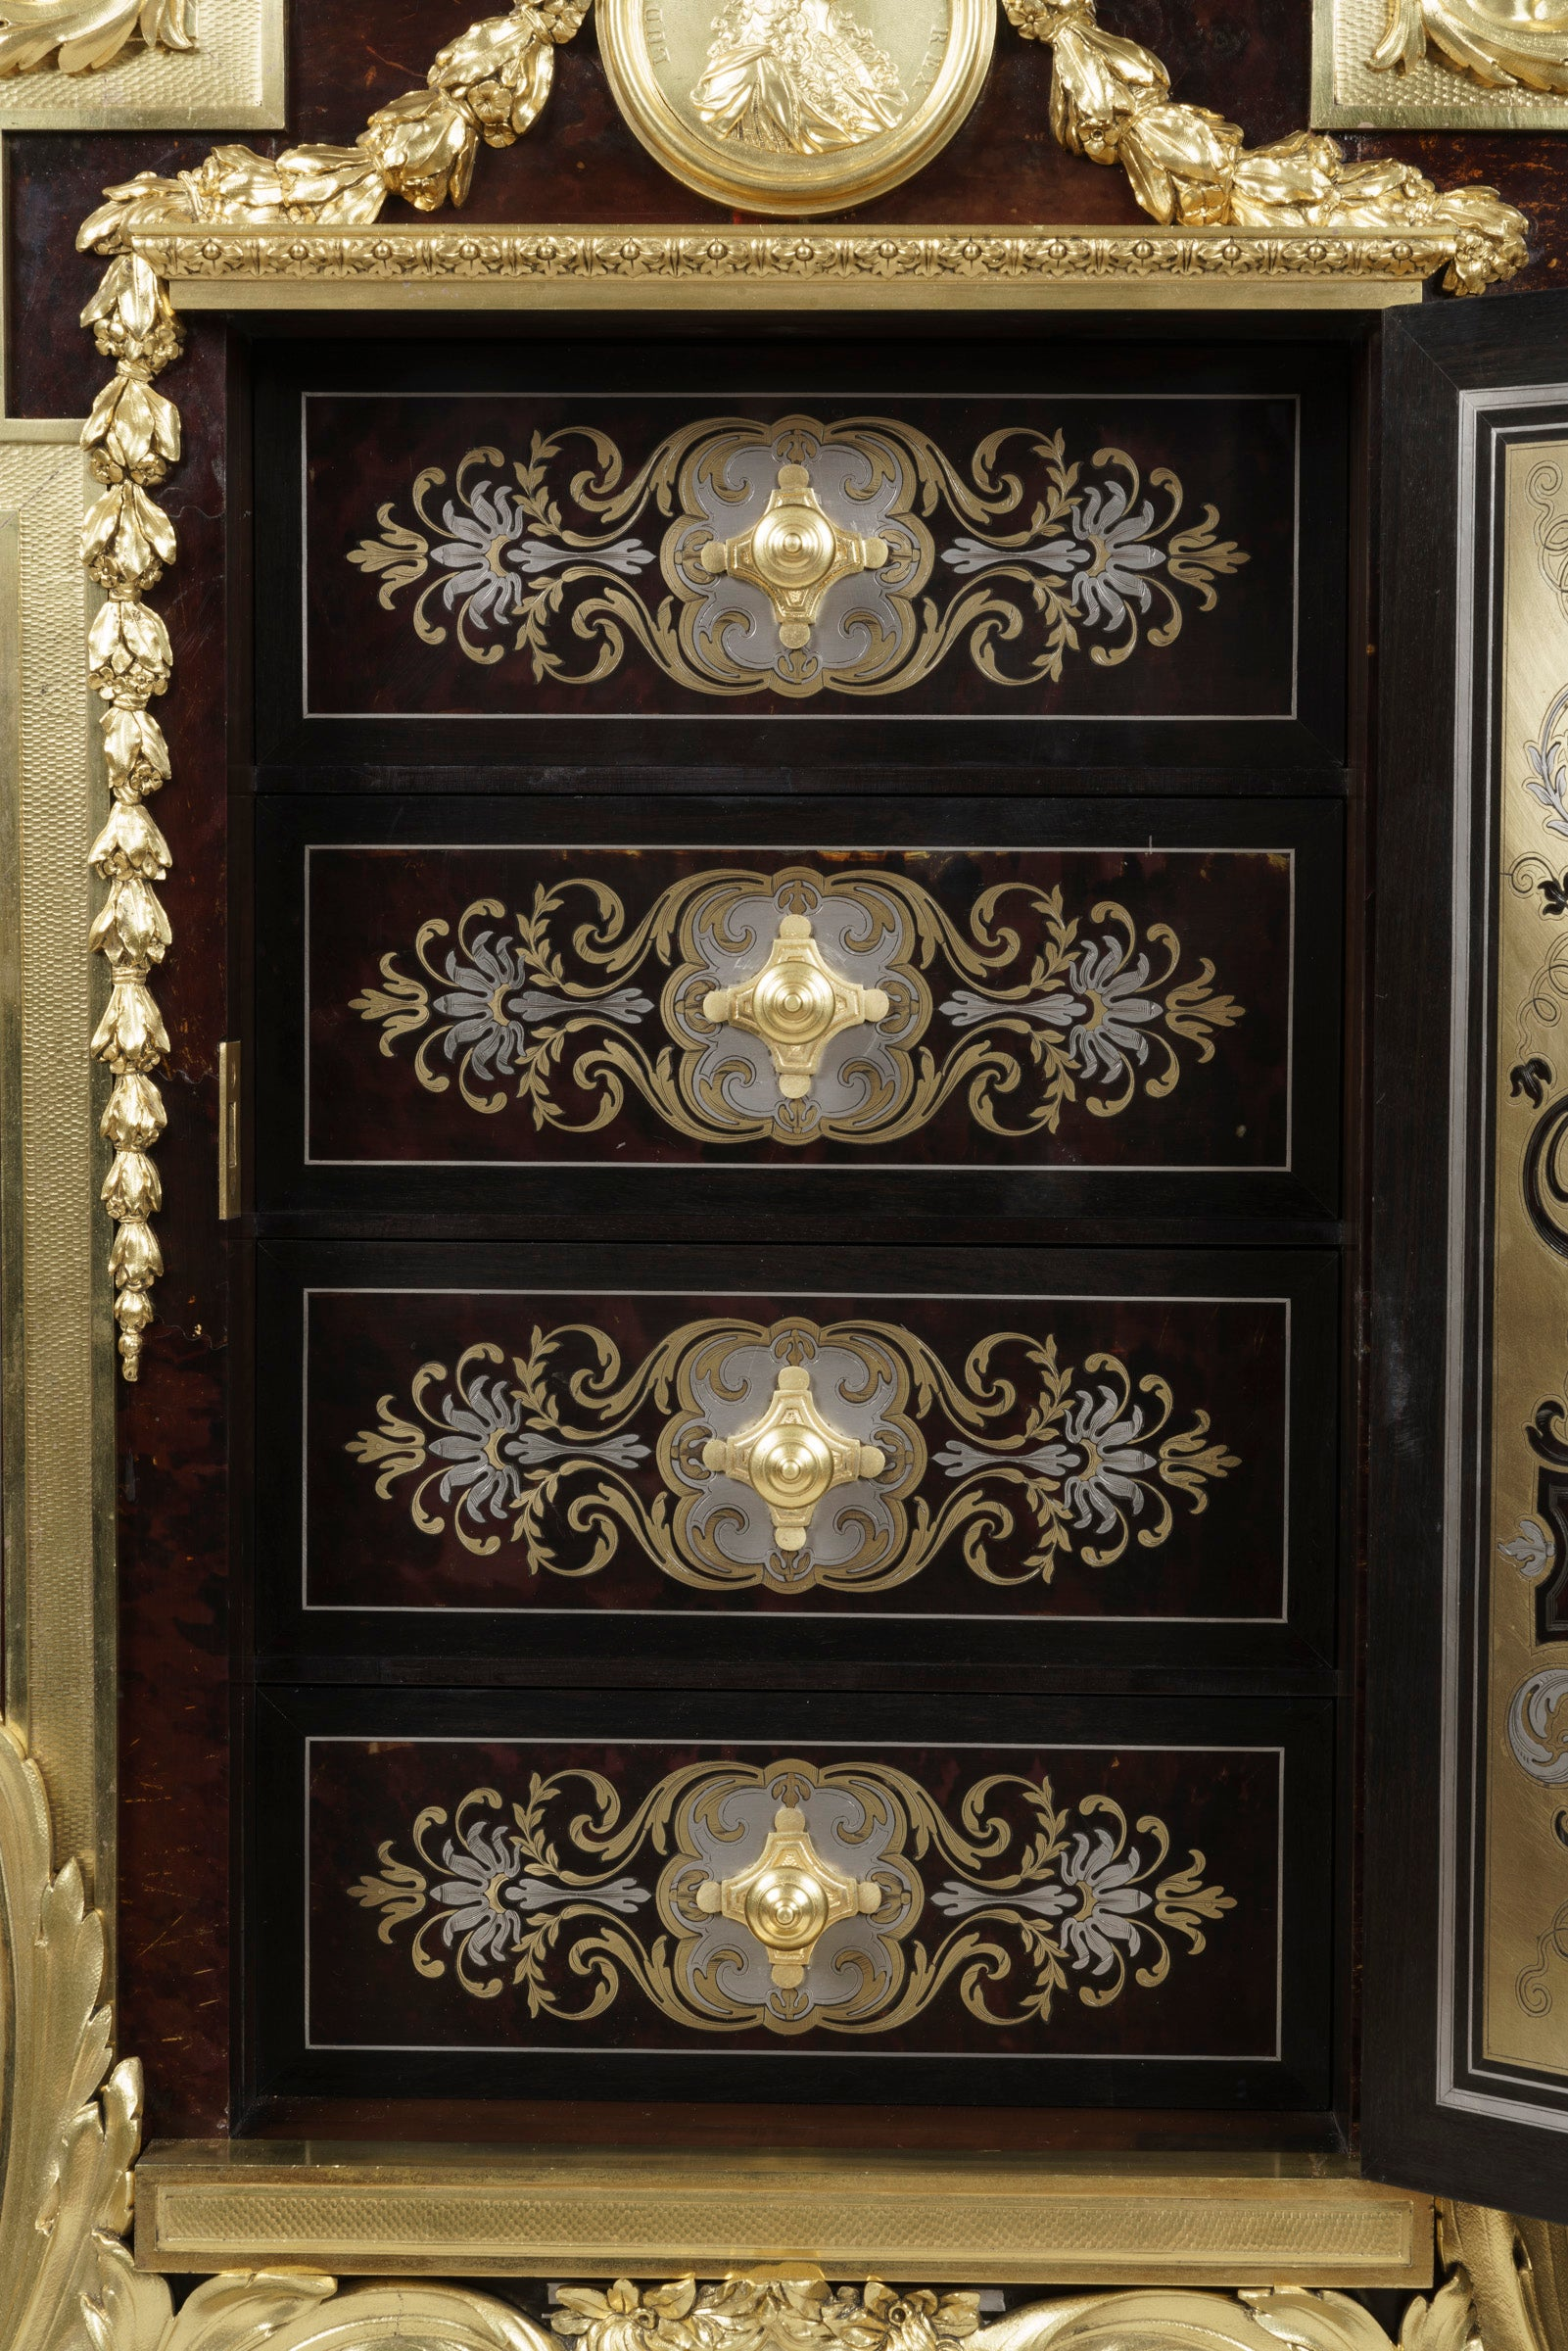 Accent Rex Meubles Rare Boulle Marquetry Cabinet Attributed To Charles Guillaume Winckelsen